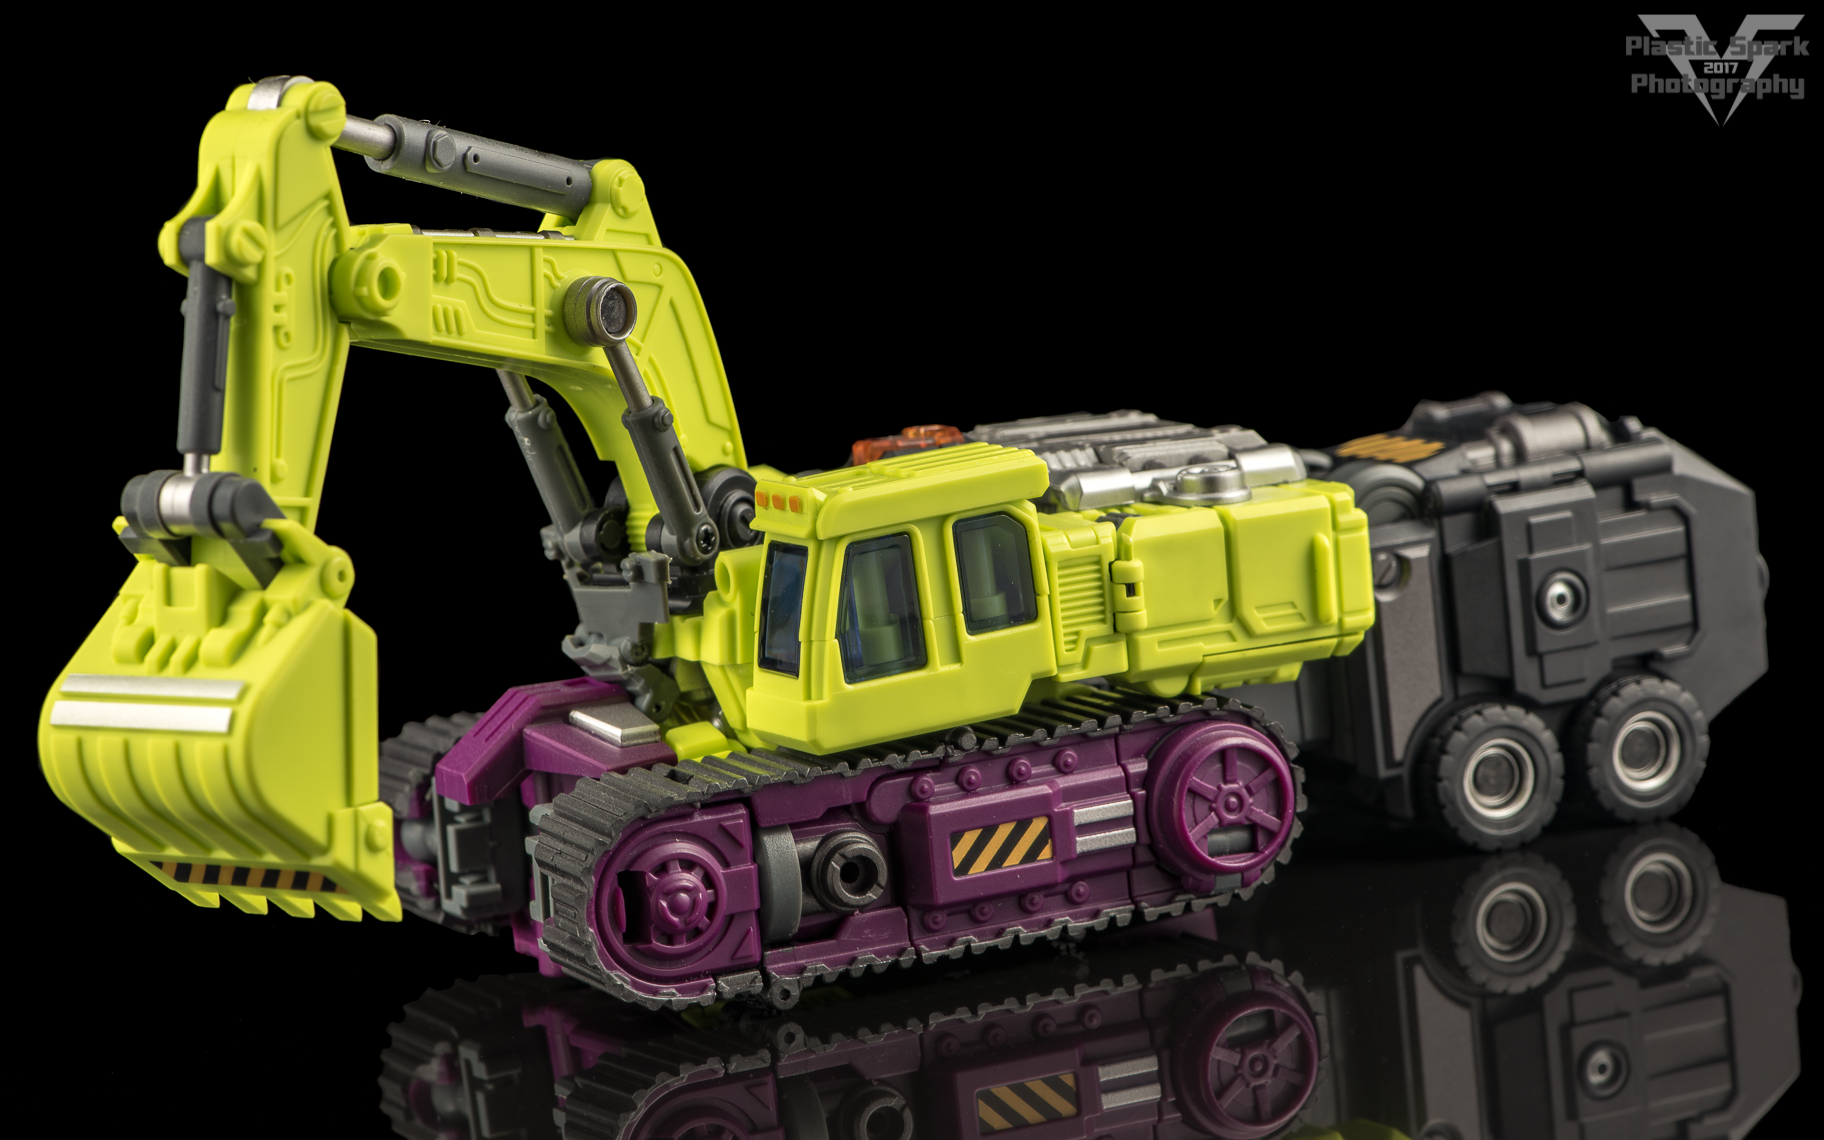 Generation-Toy-Gravity-Builder-(6-of-34).png